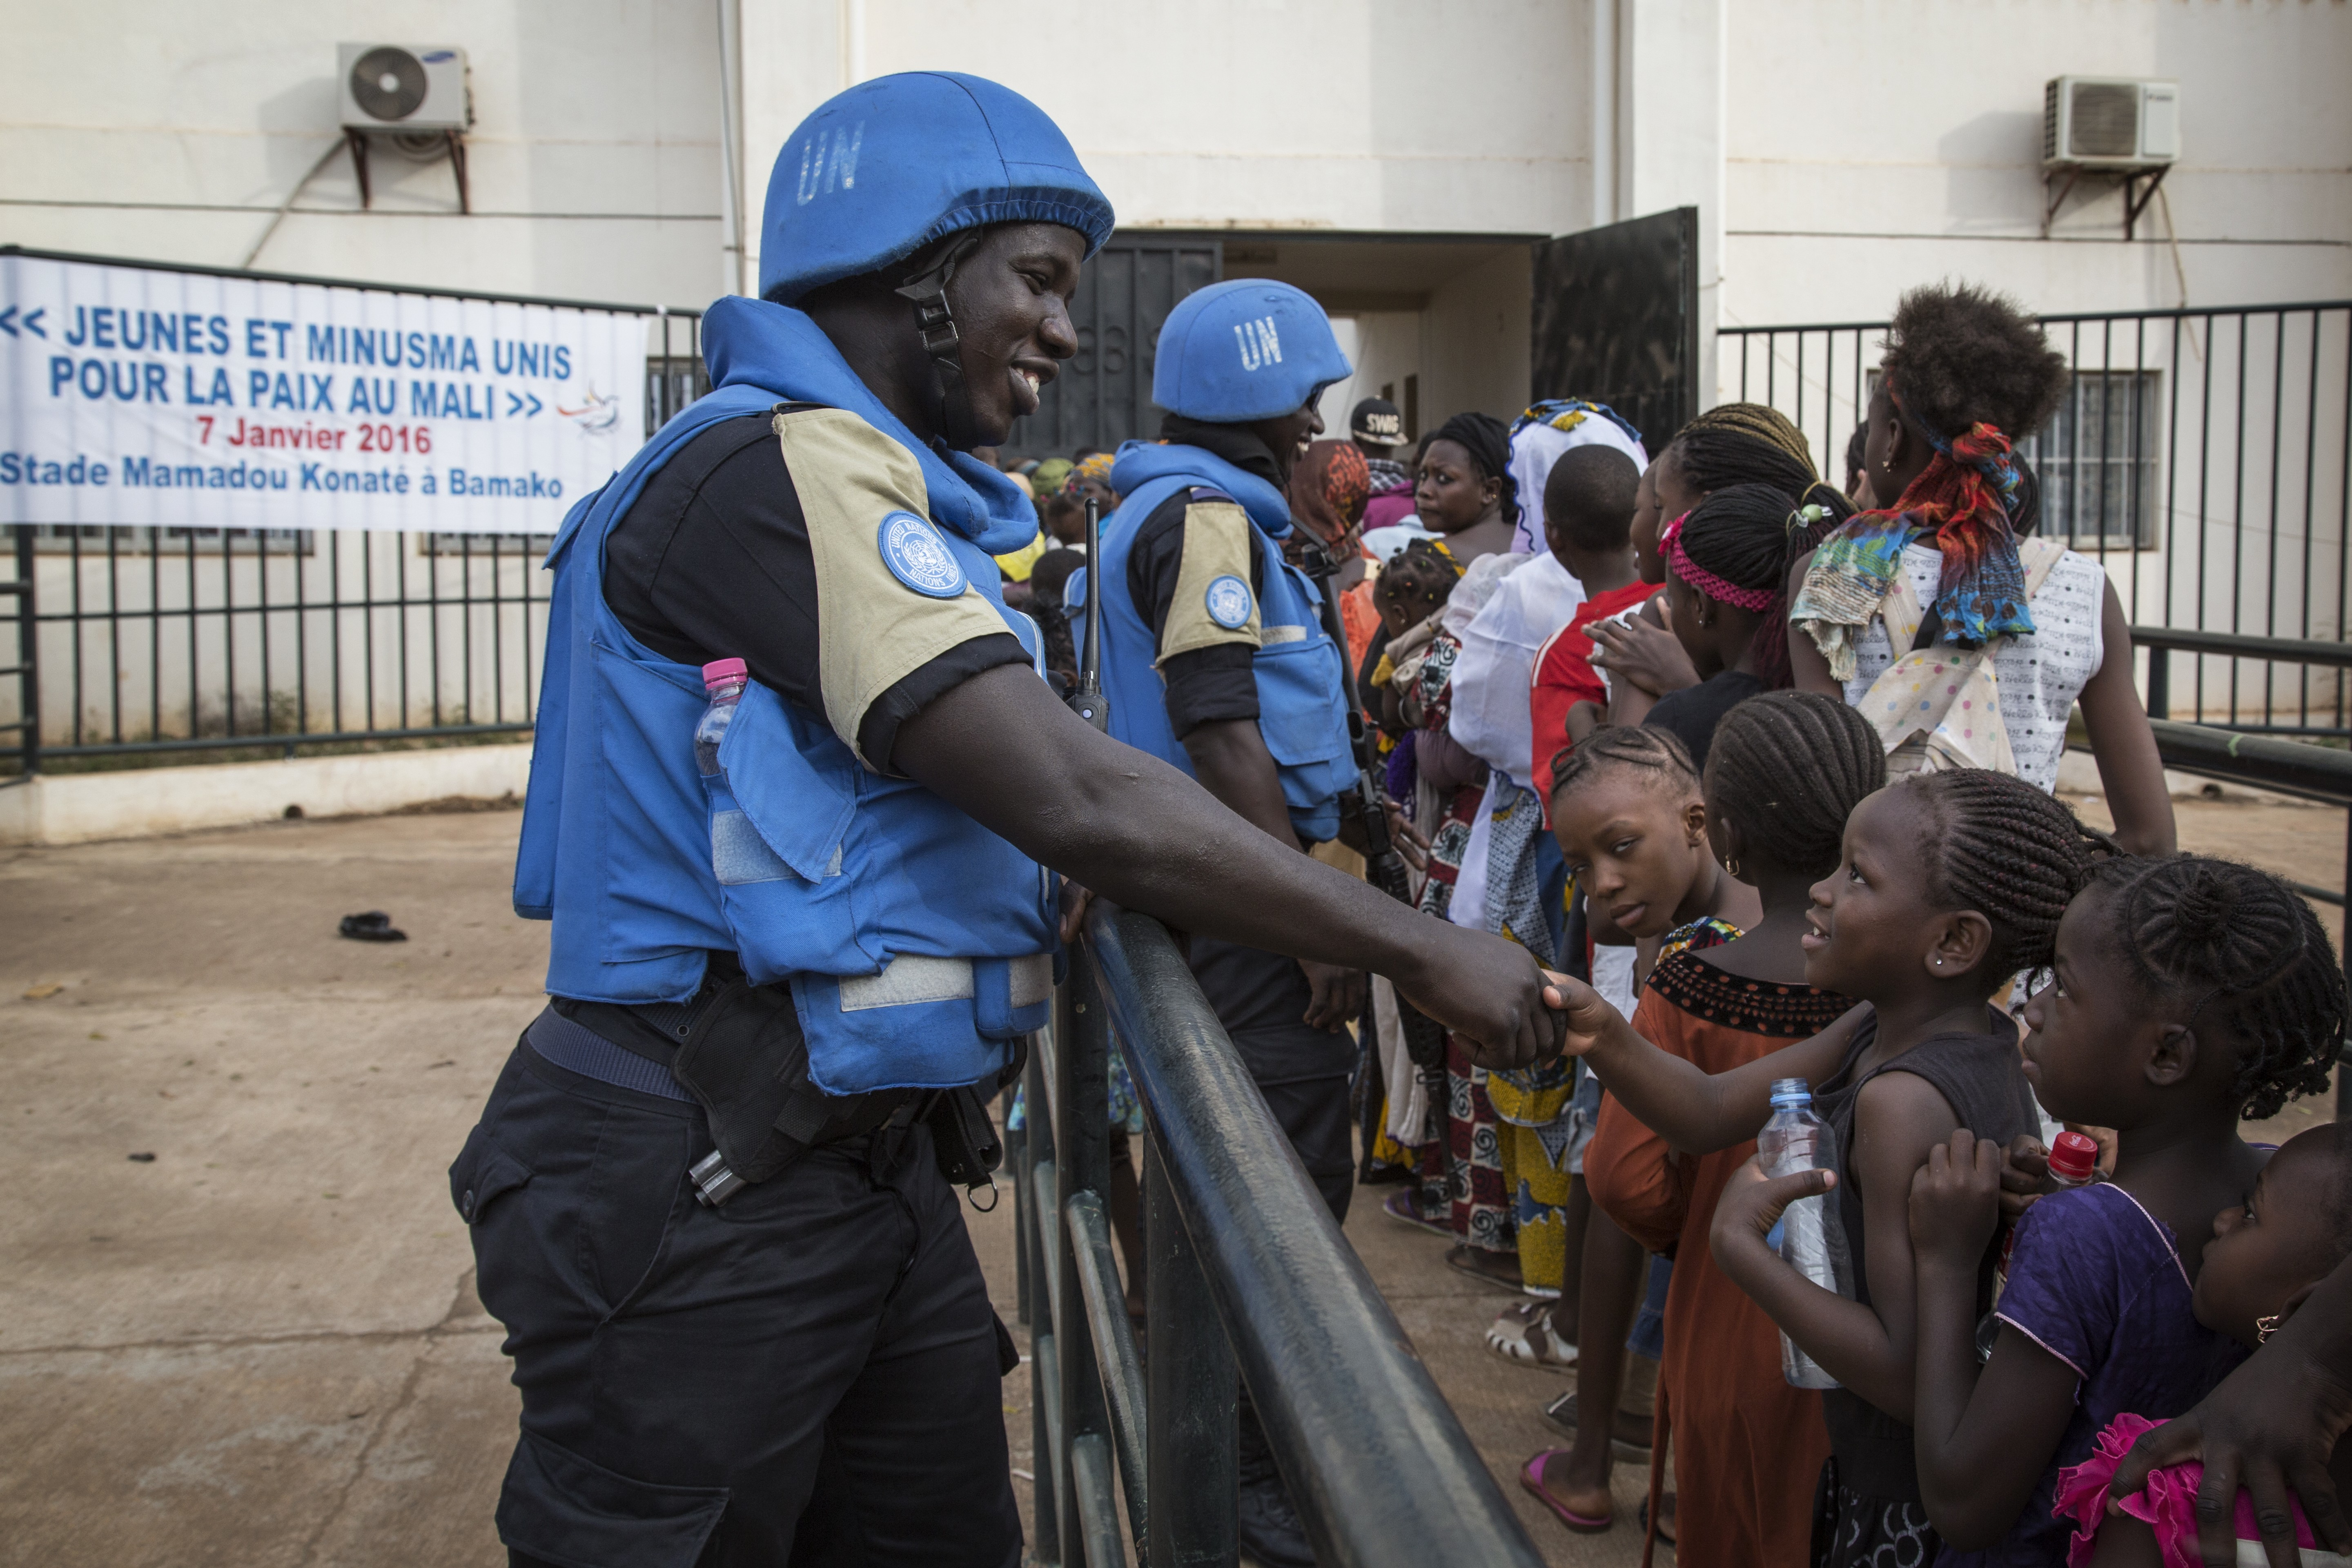 Senegalese peacekeepers from the UN Multidimensional Integrated Stabilization Mission in Mali (MINUSMA) Formed Police Unit (FPU) speak with Malians while they patrol outside Mamadou Konate Stadium during a sport event organized by the Outreach Unit to promote peace among the youth.